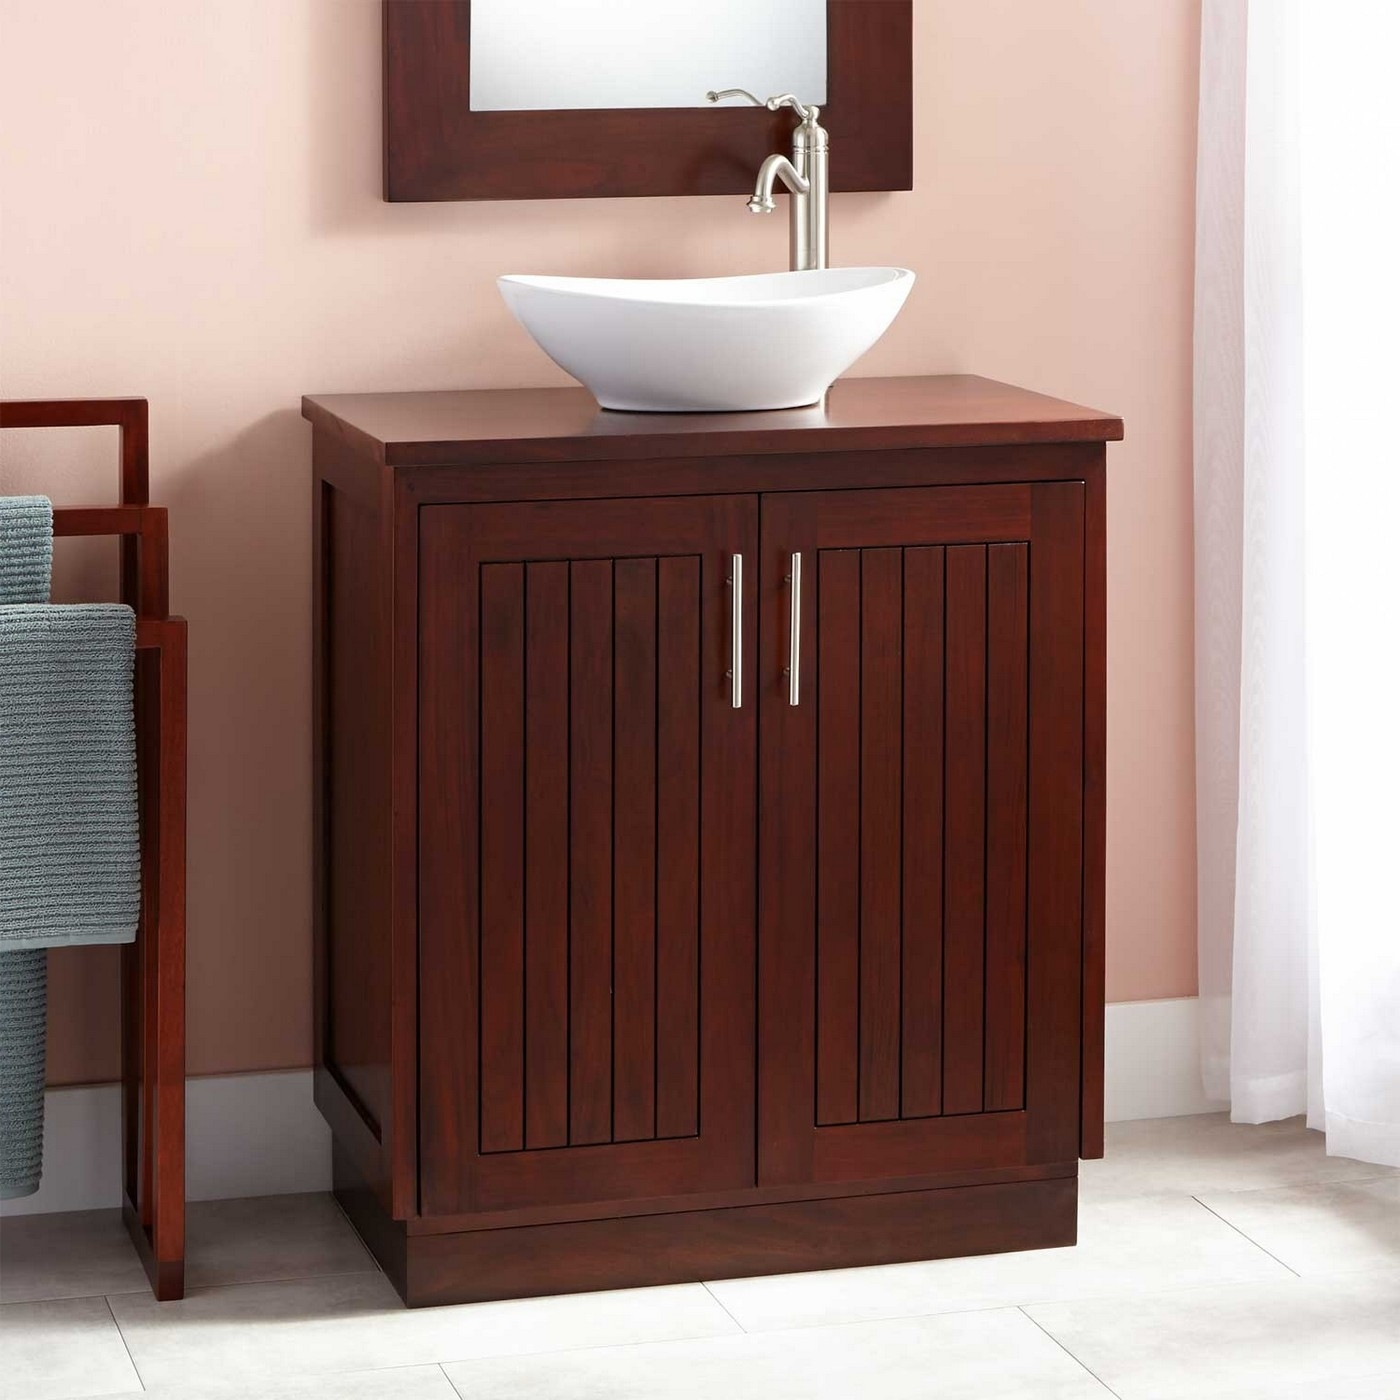 18 Inch Wide Bathroom Vanity With Sink